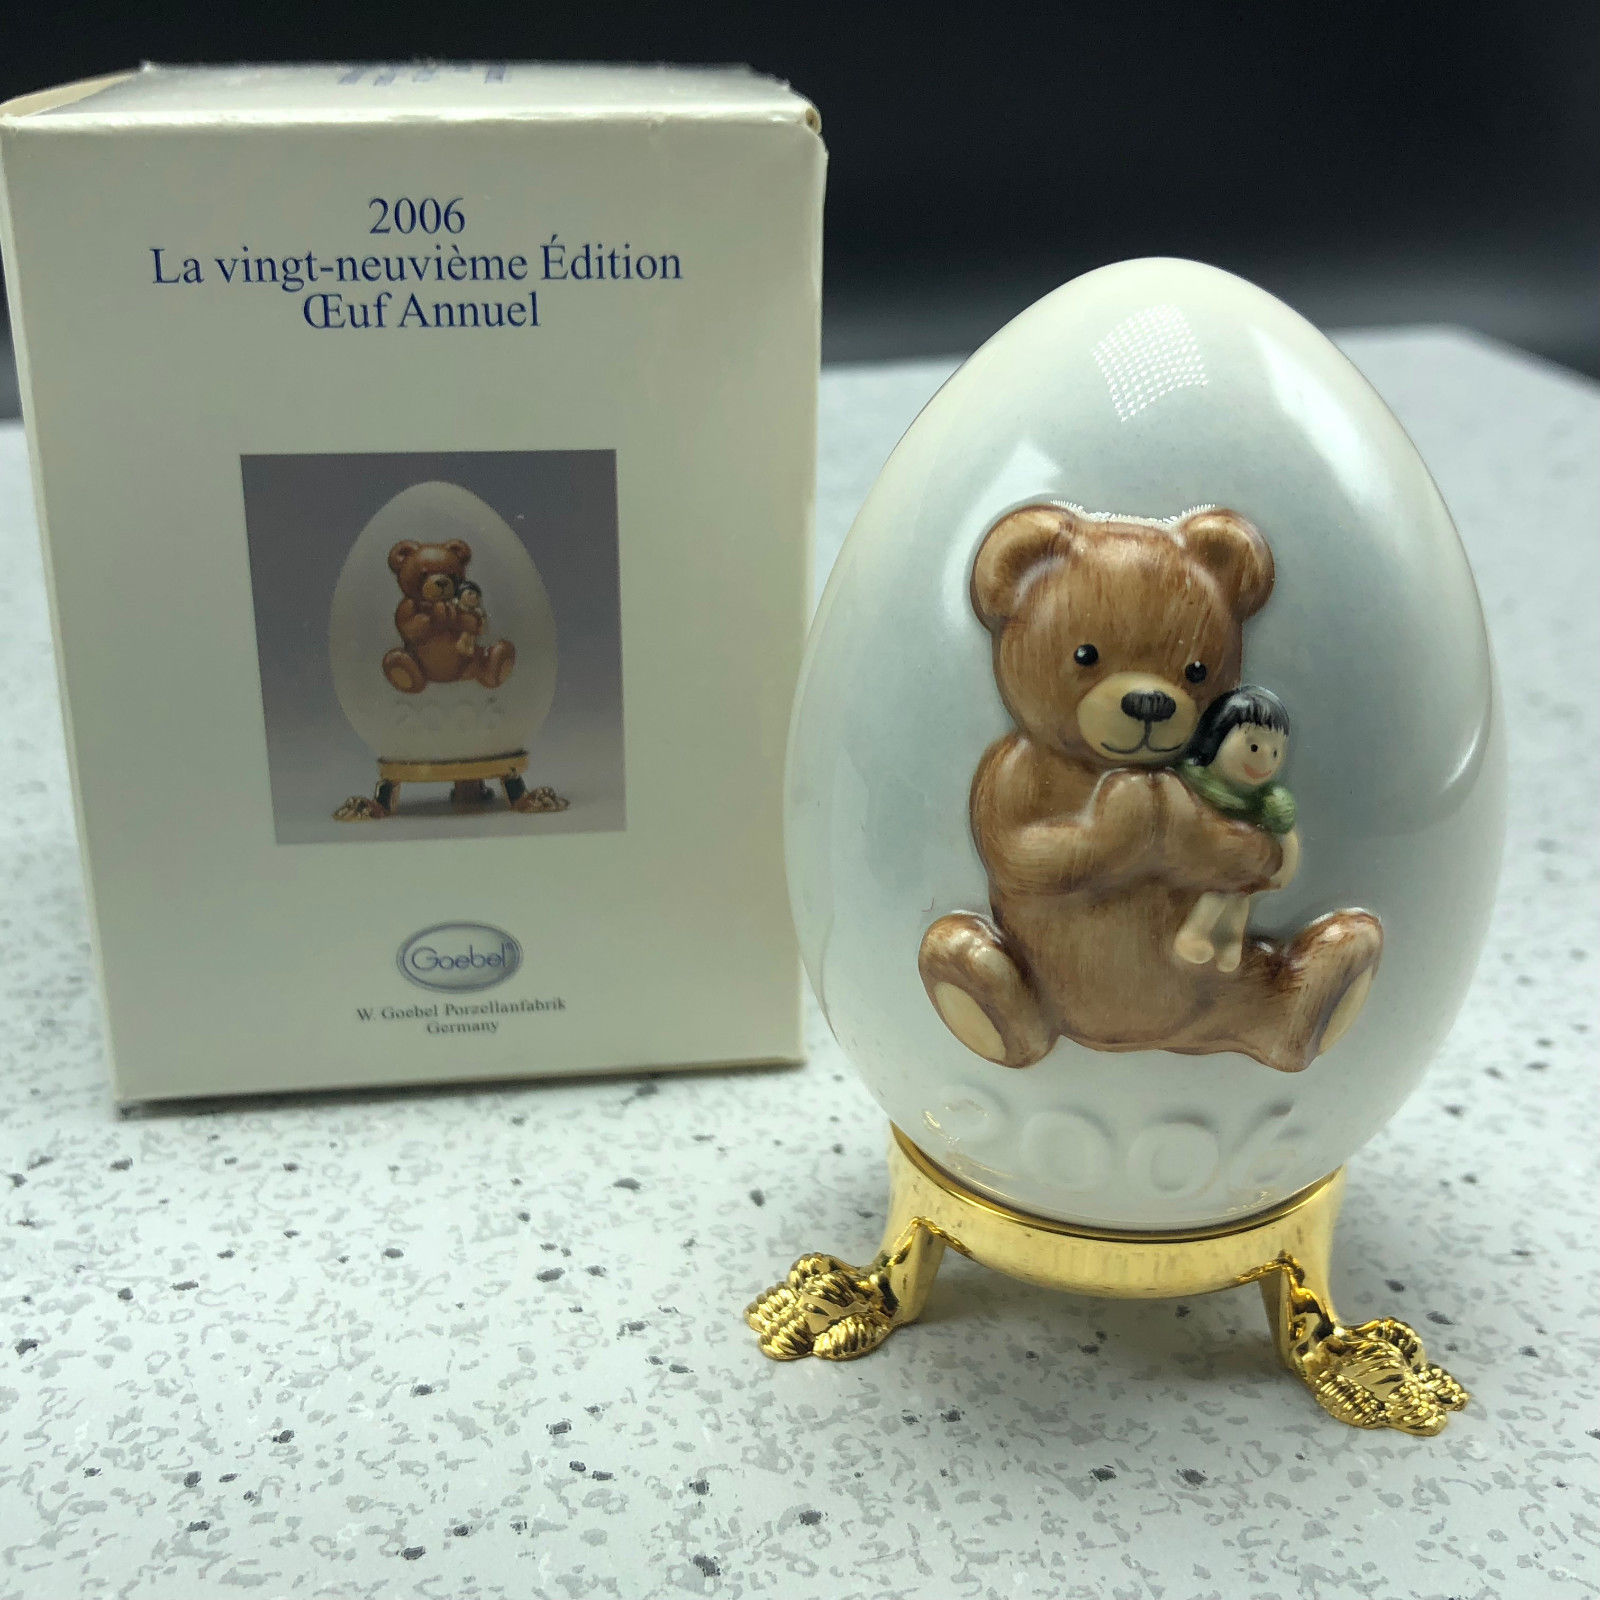 2006 GOEBEL ANNUAL EASTER EGG West Germany 29th edition figurine teddy bear doll